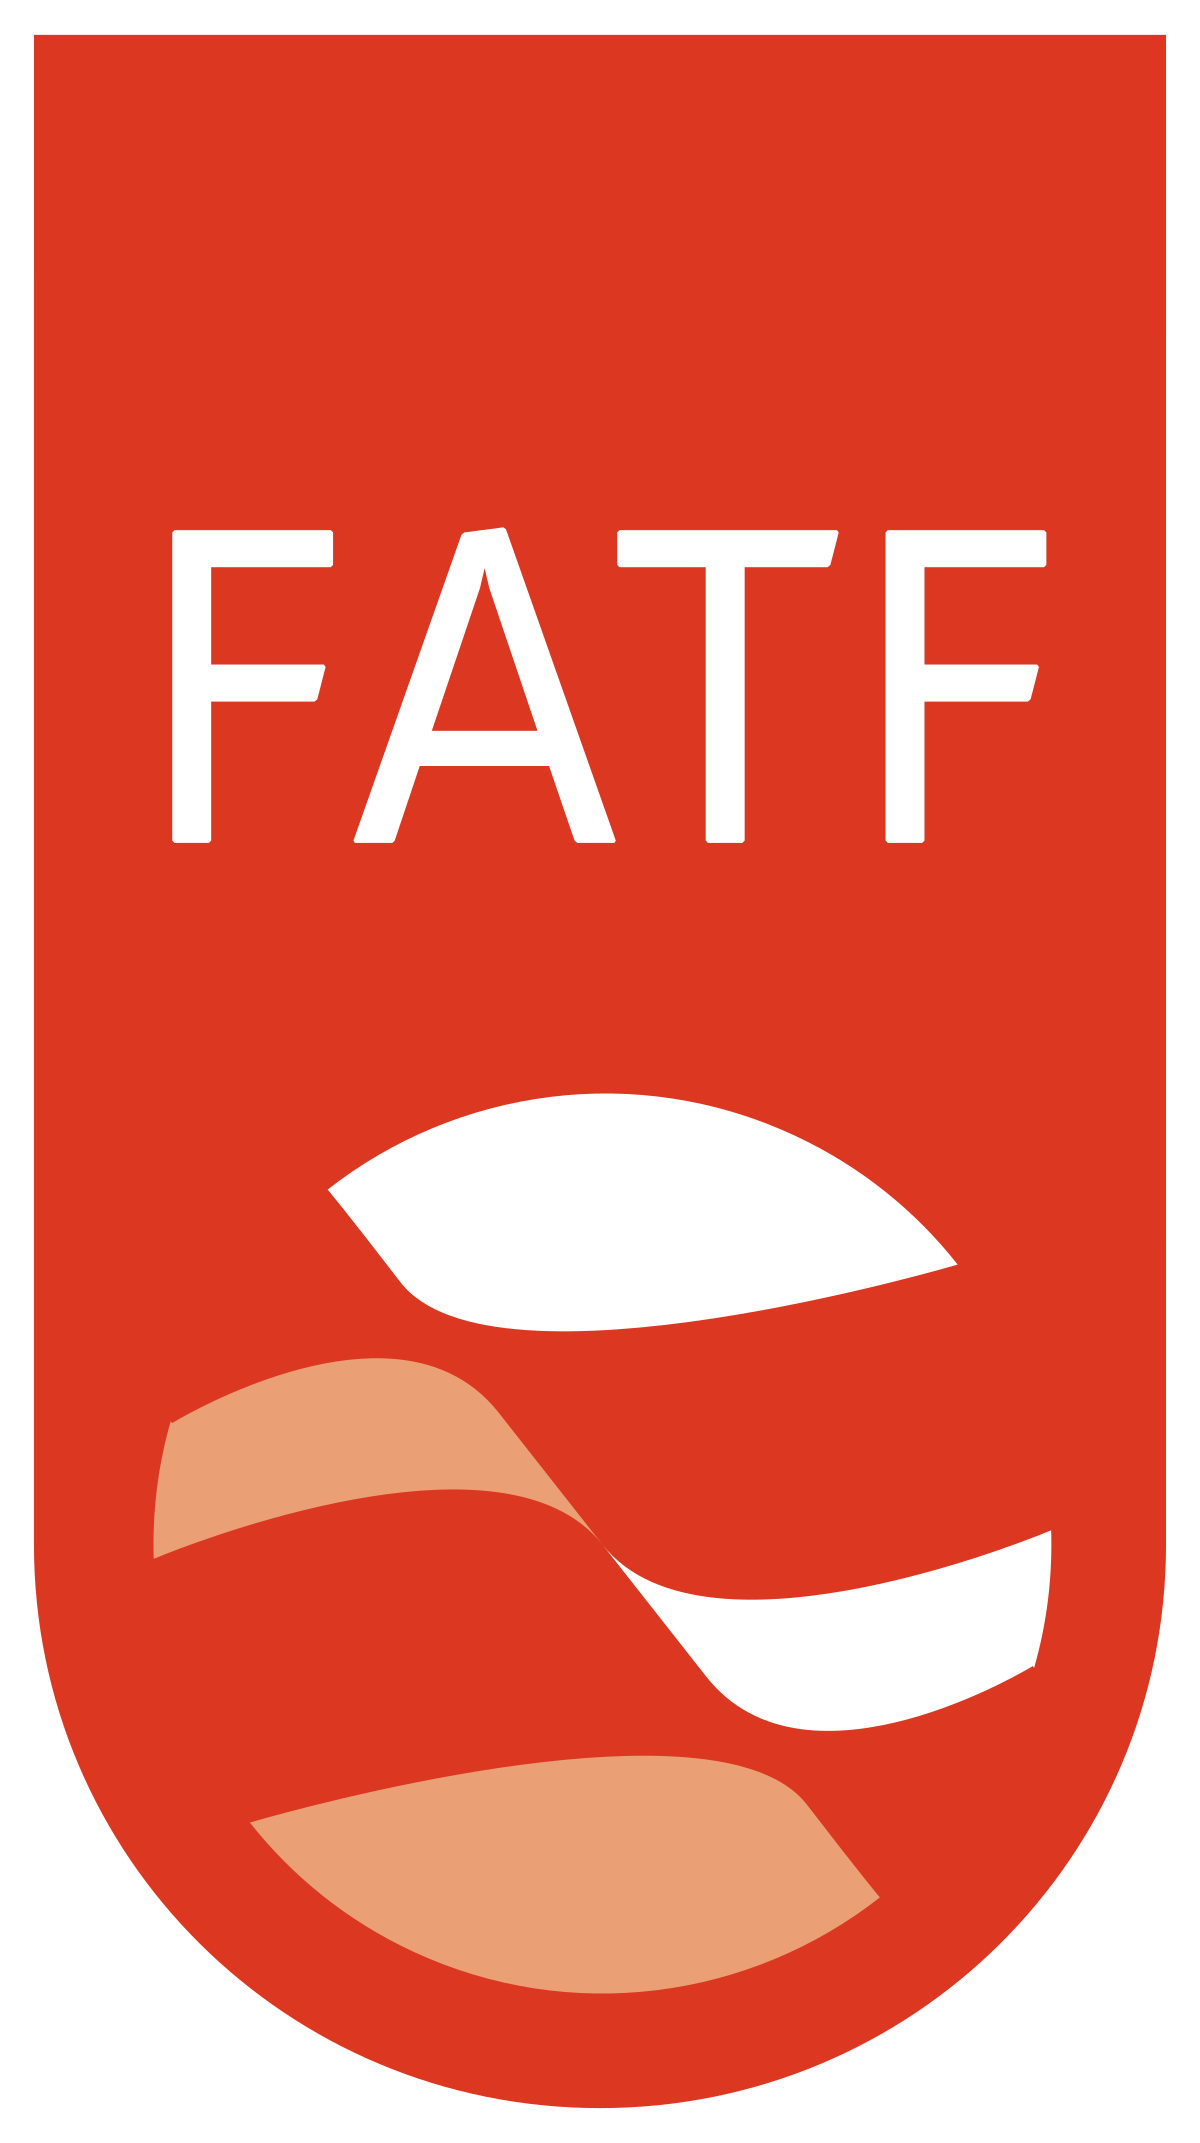 FATF - Money Laundering and Risk Based Approach